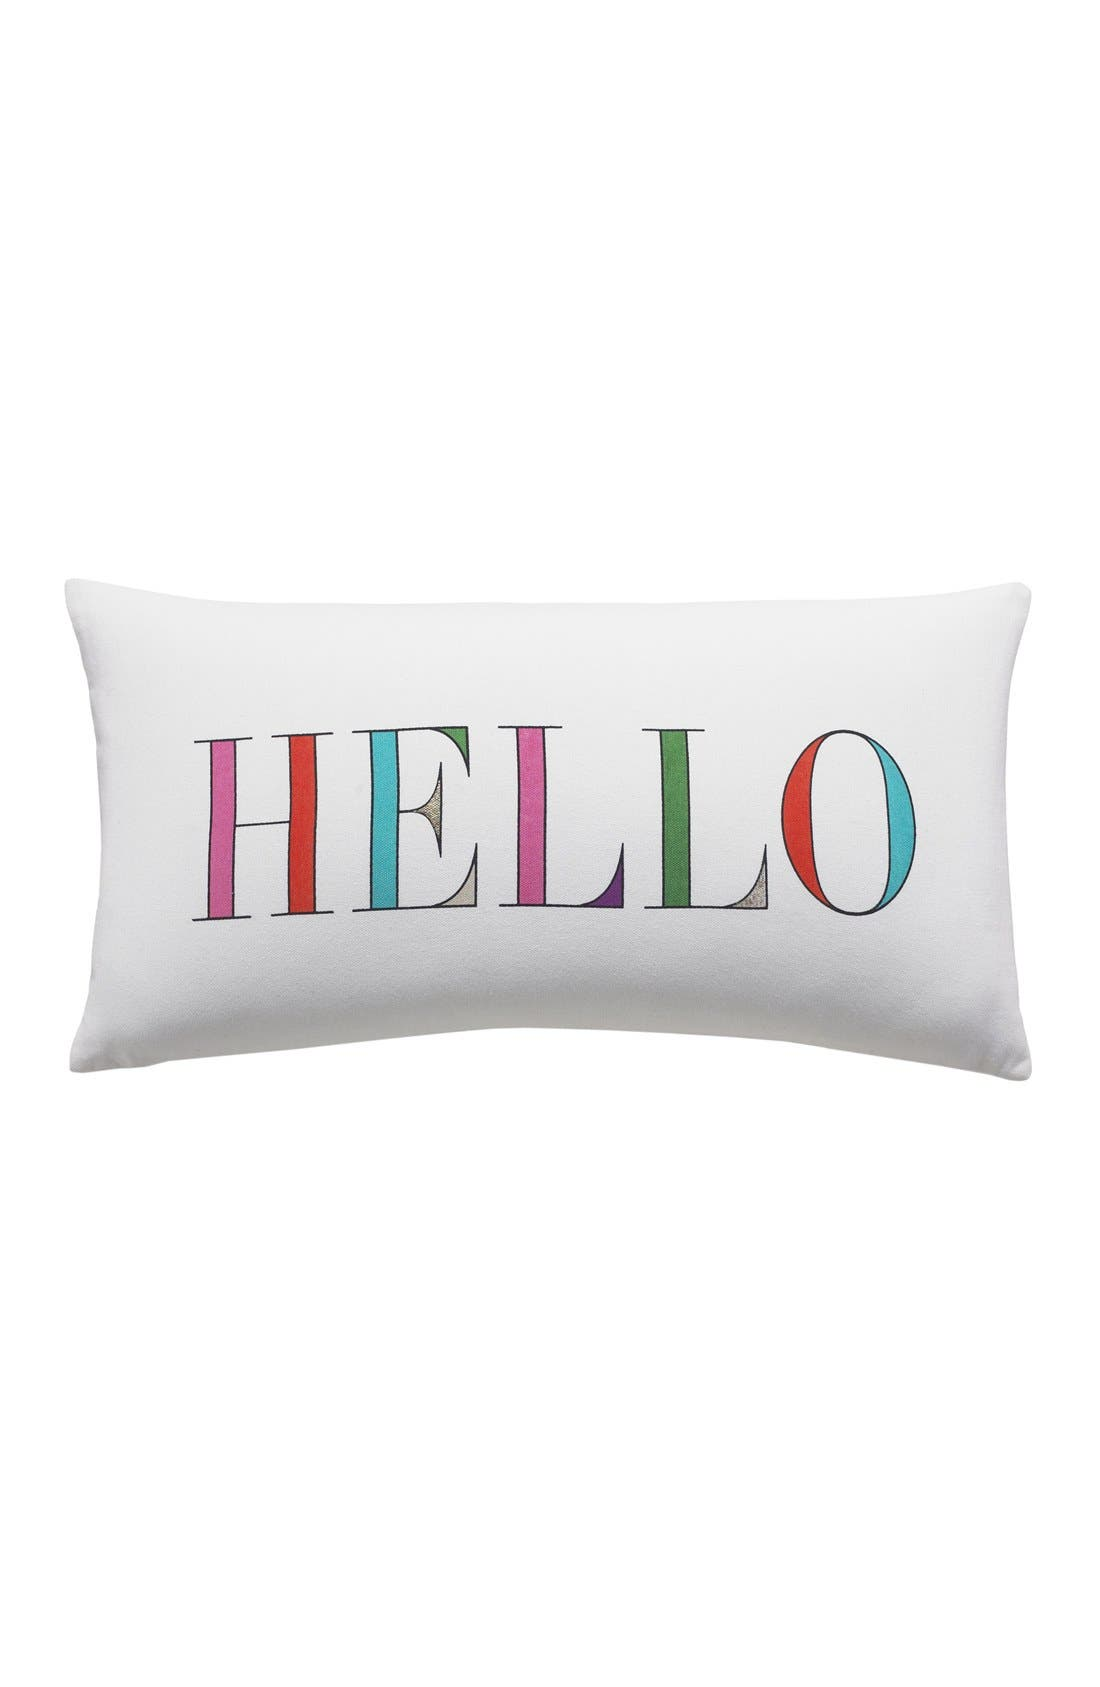 Alternate Image 1 Selected - kate spade new york 'hello' accent pillow